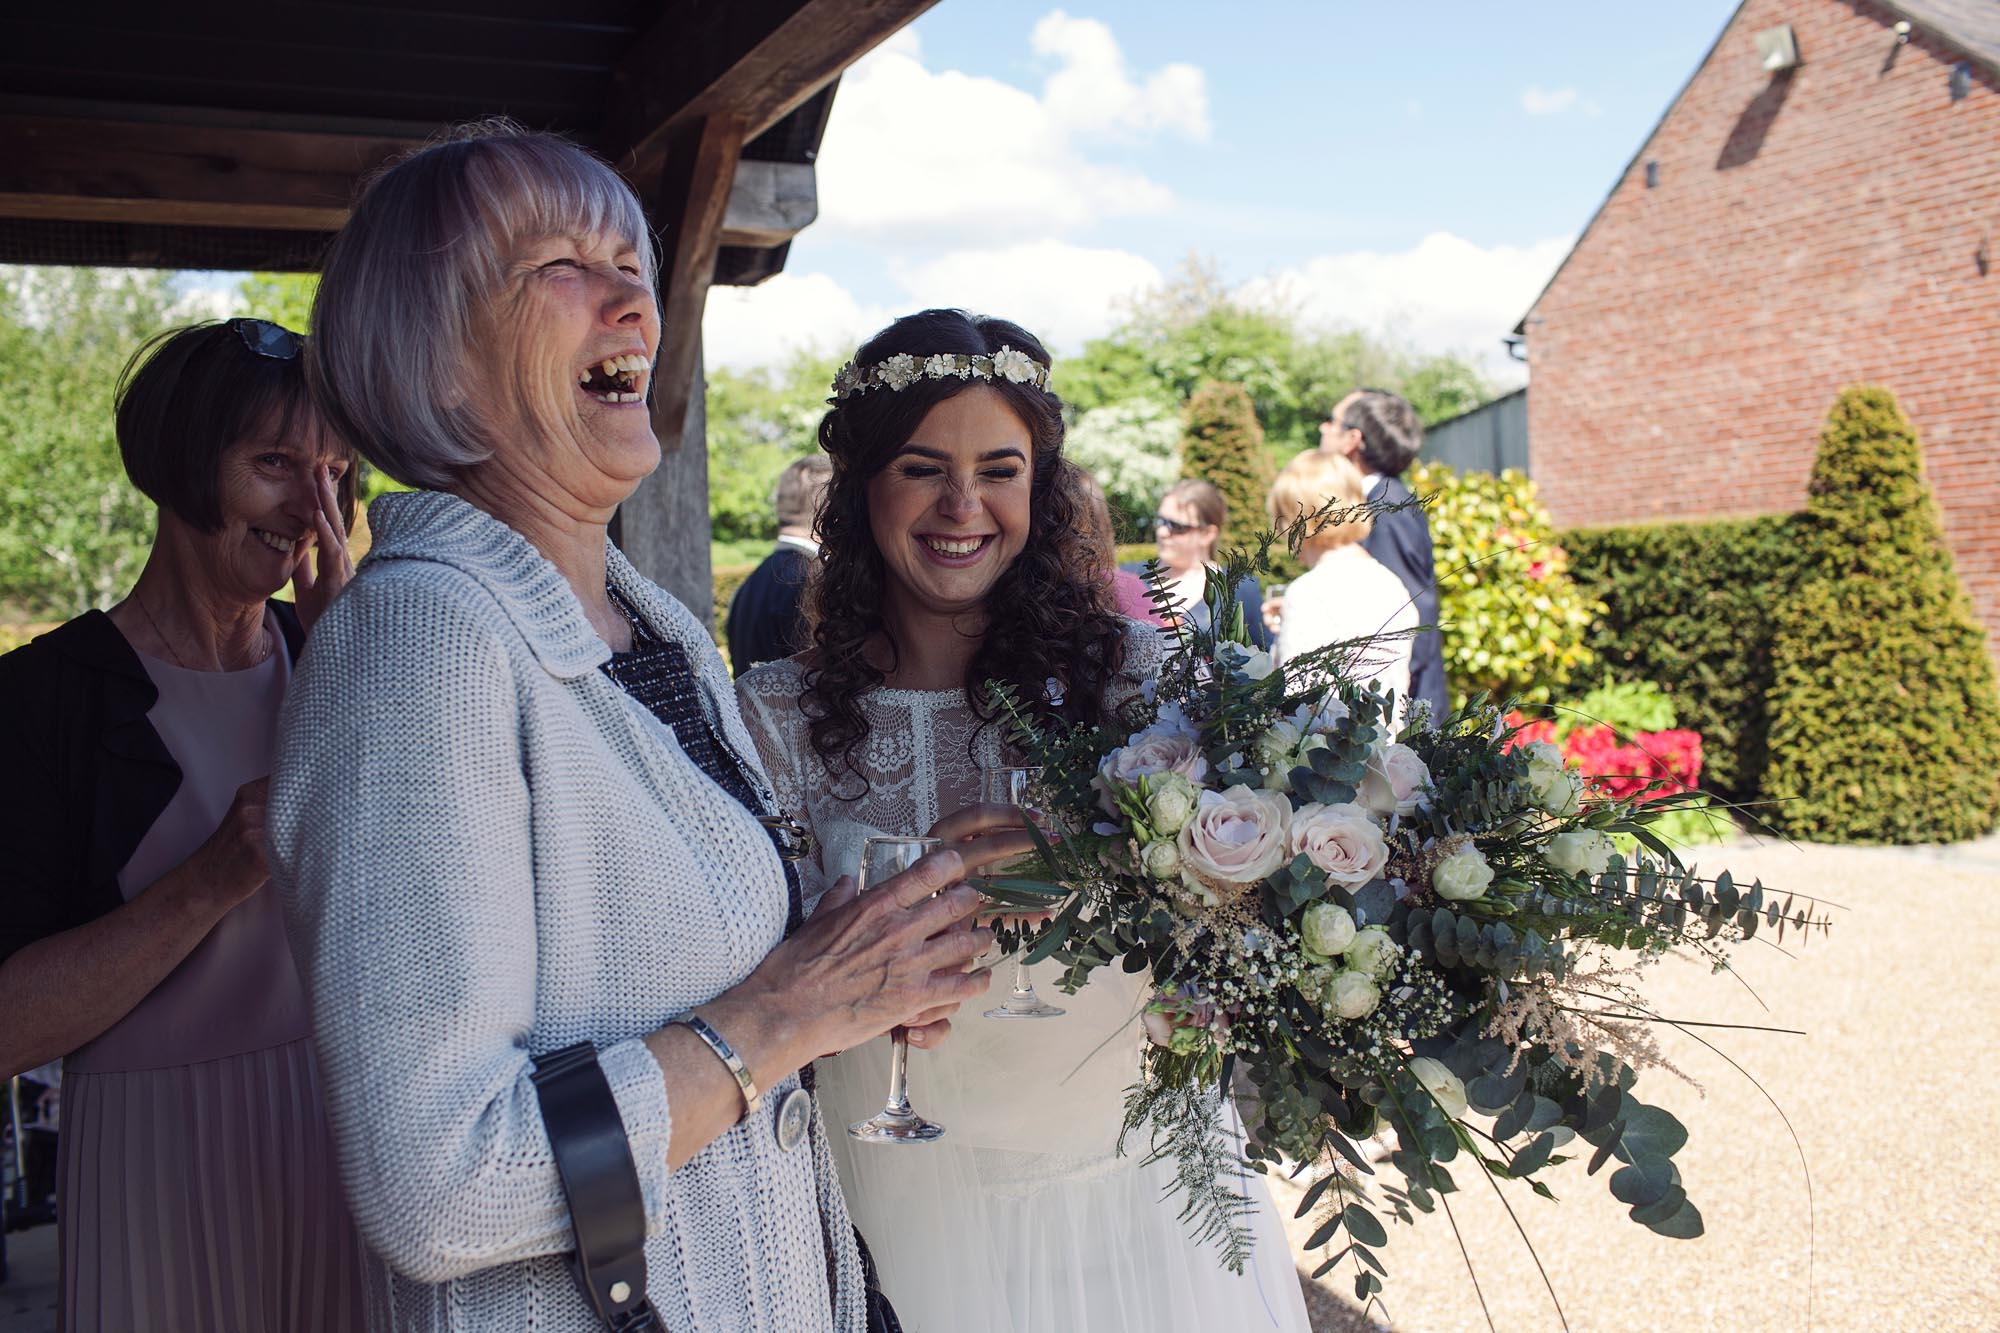 Bride getting guests at her wedding photography